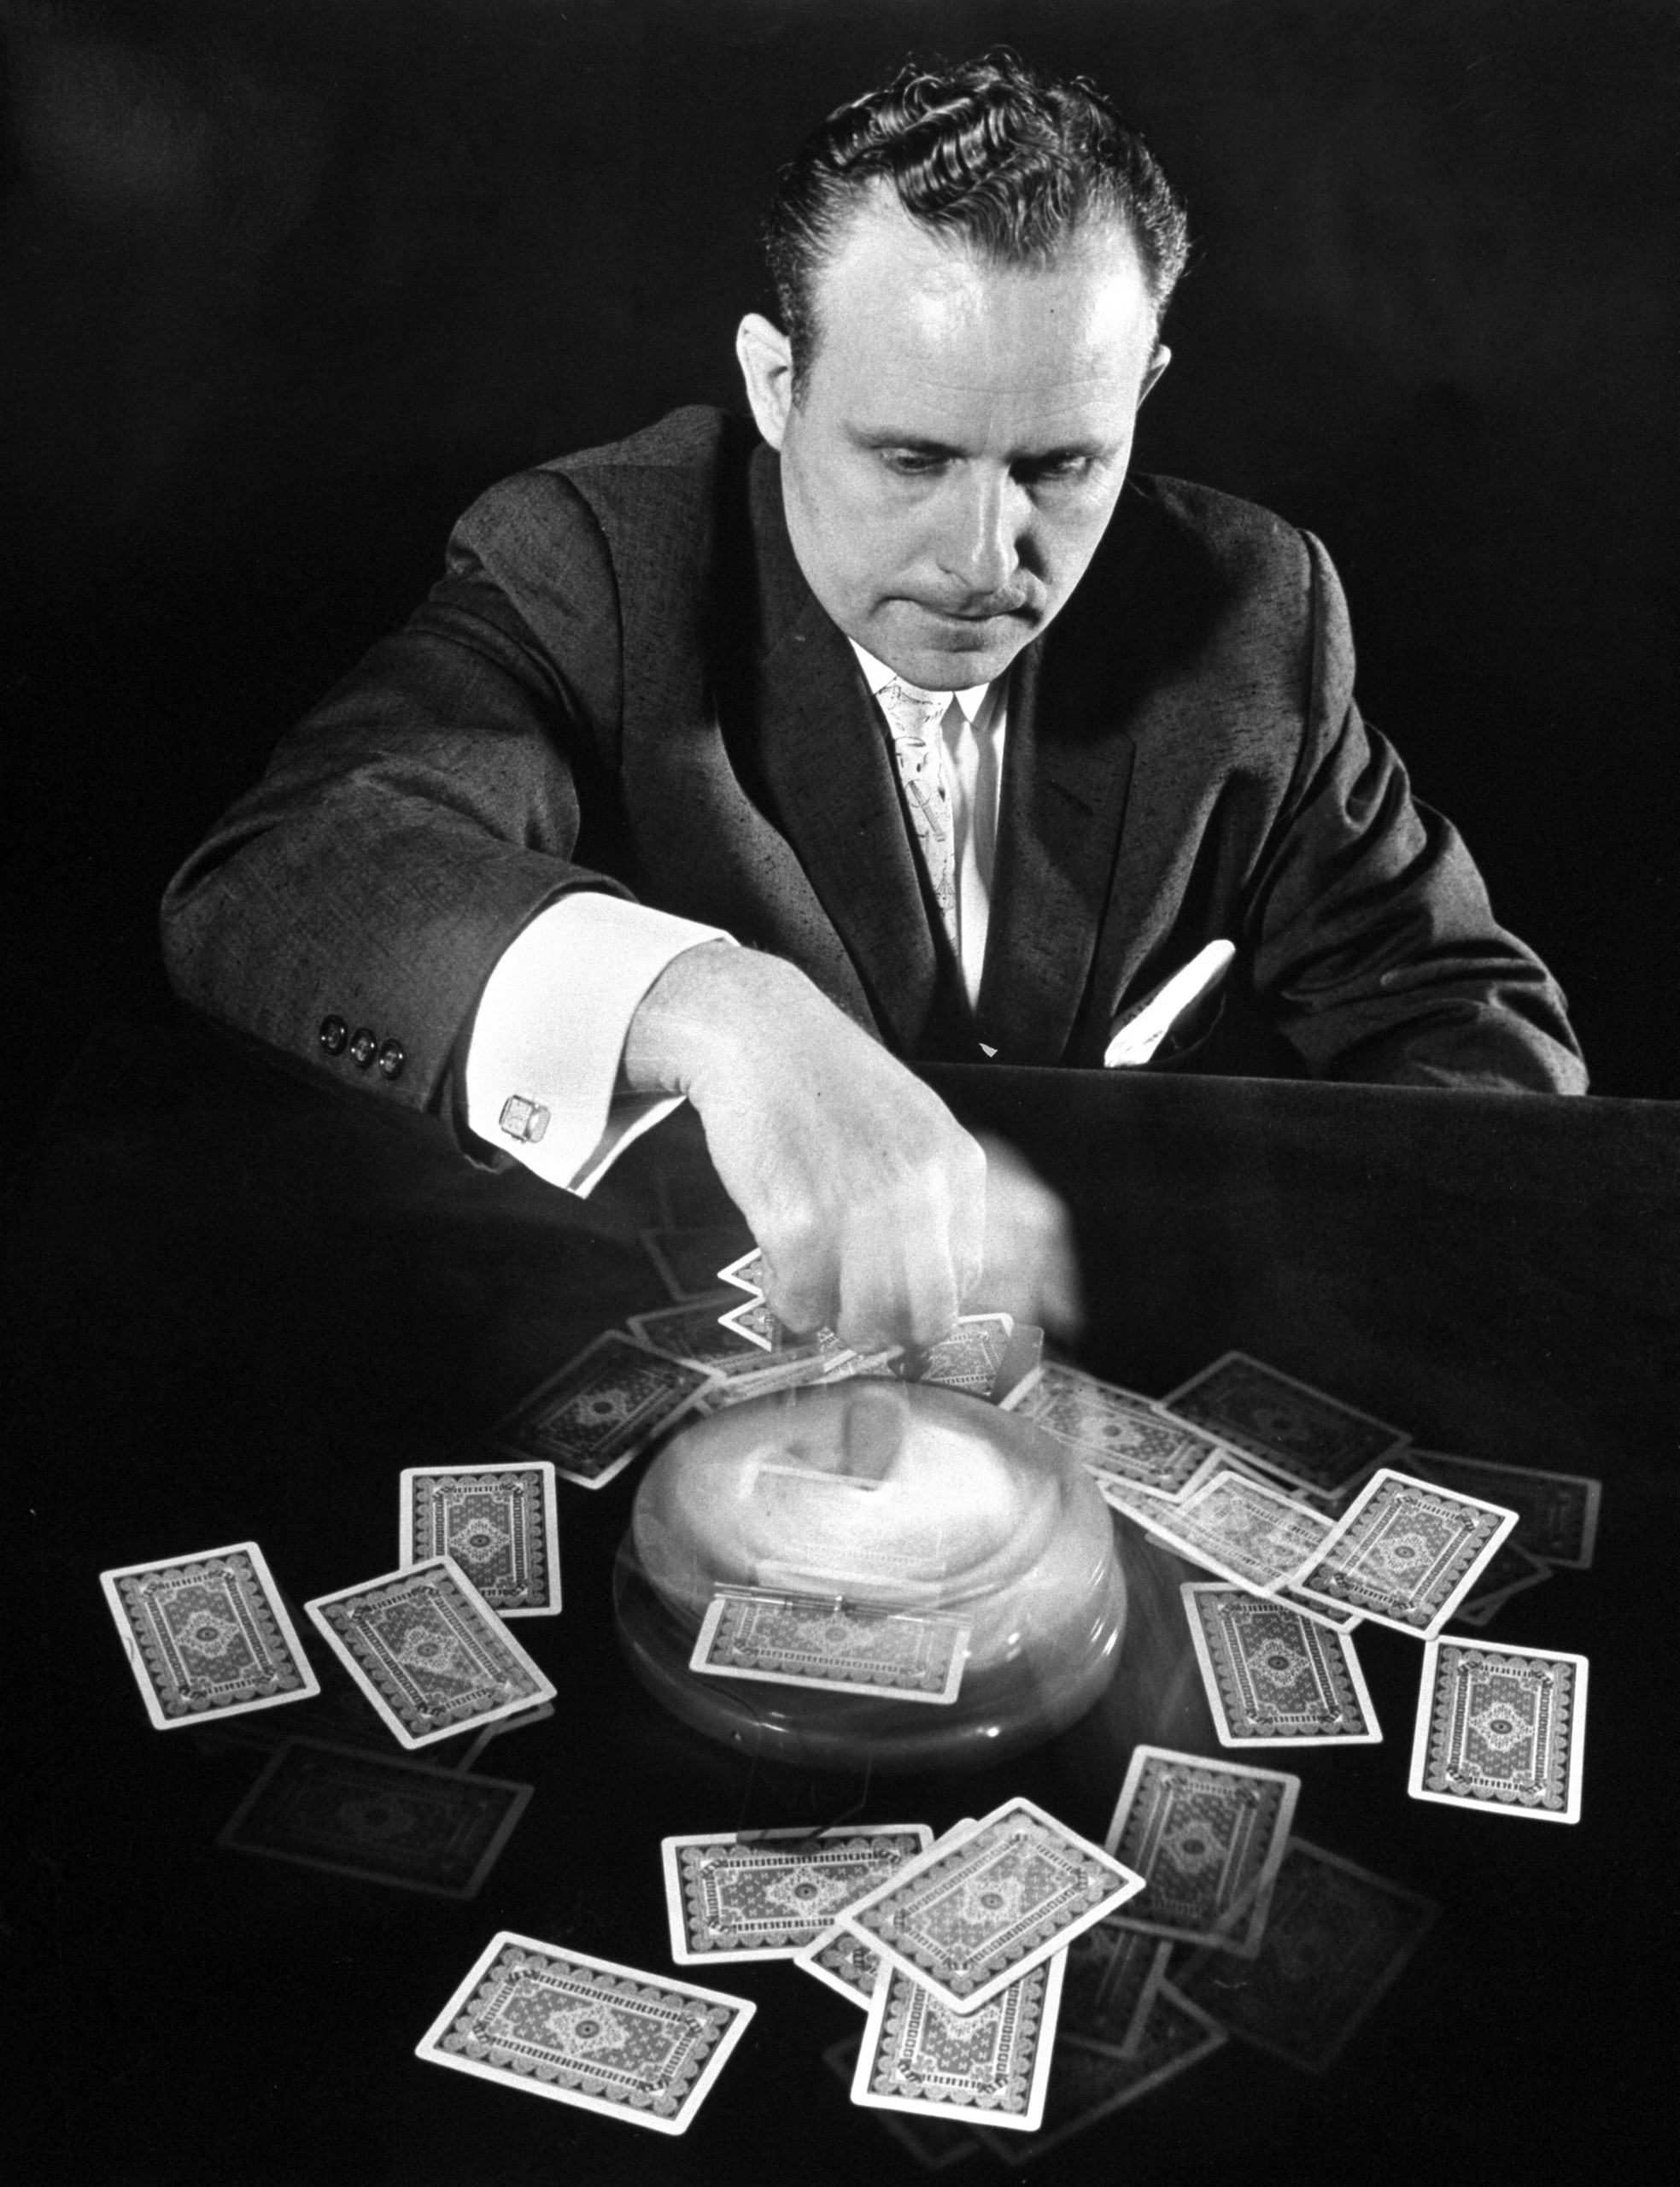 <b>Caption from LIFE.</b> Frank Wirth spins device that deals four card hands at once.